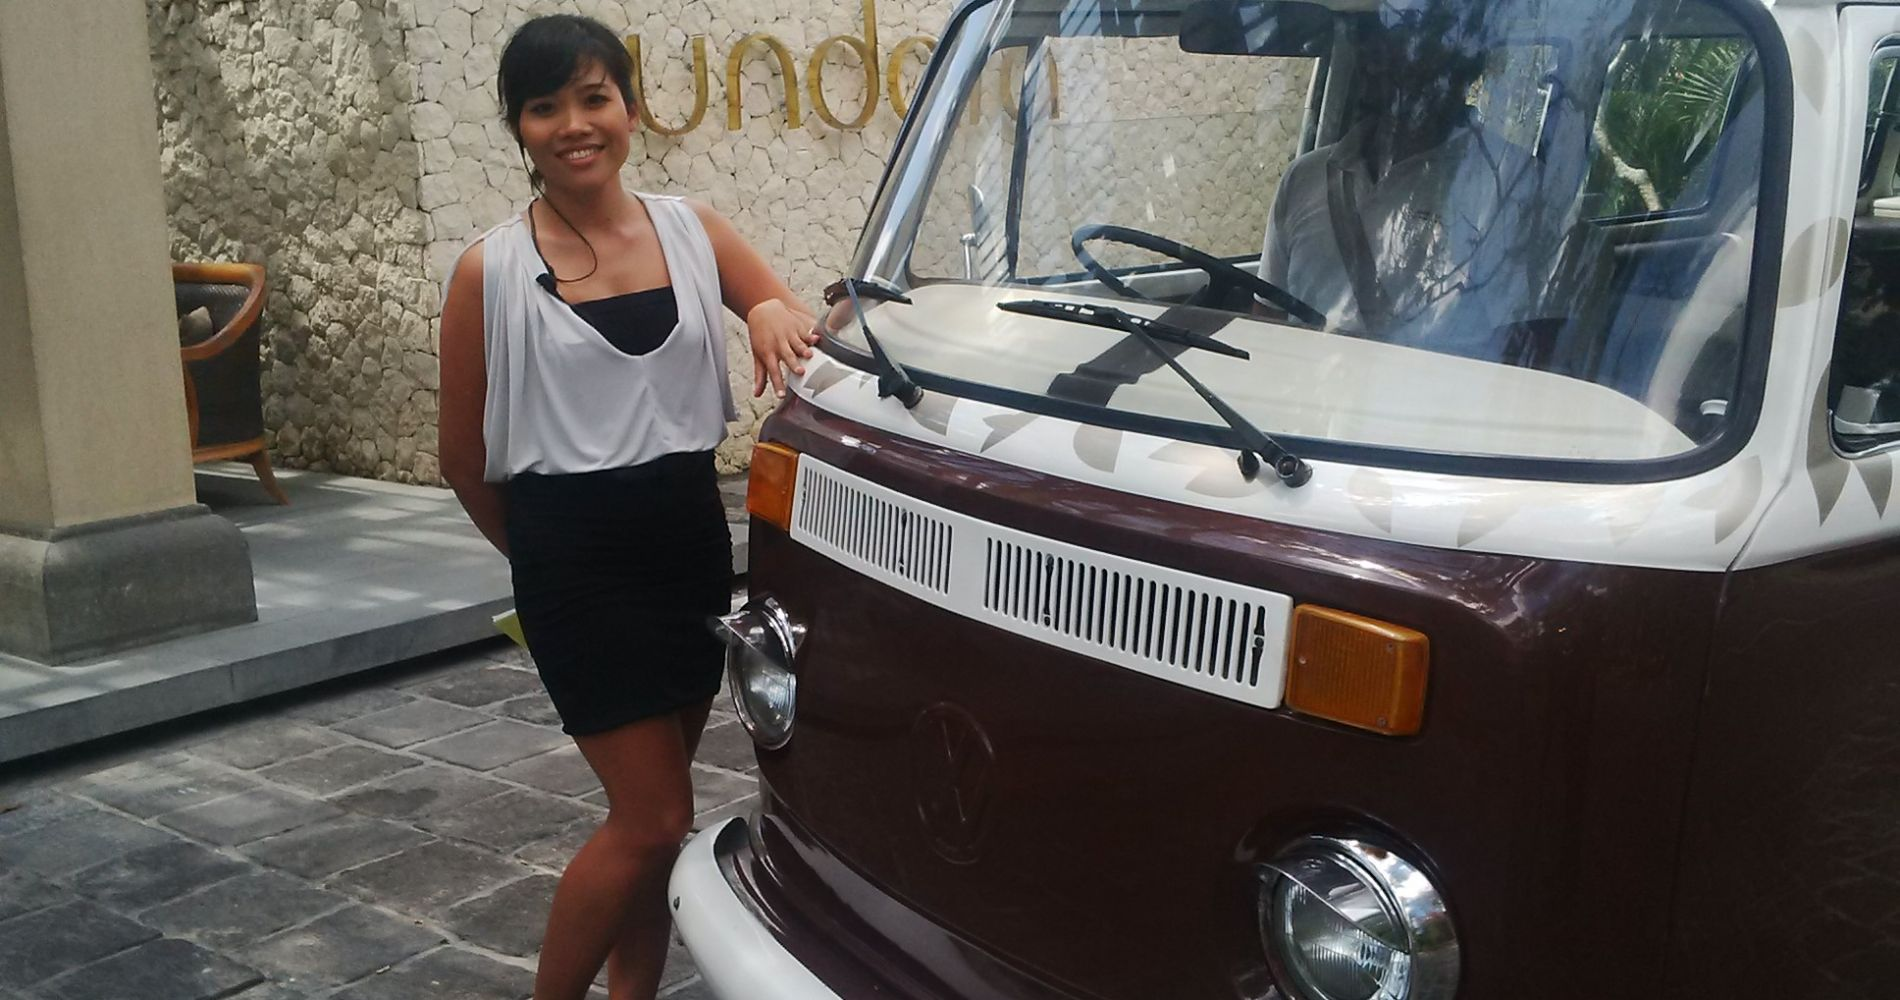 VW Kombi Cocktail Safari Indonesia VW Kombi Cocktail Safari Indonesia Tinggly Experience Gift